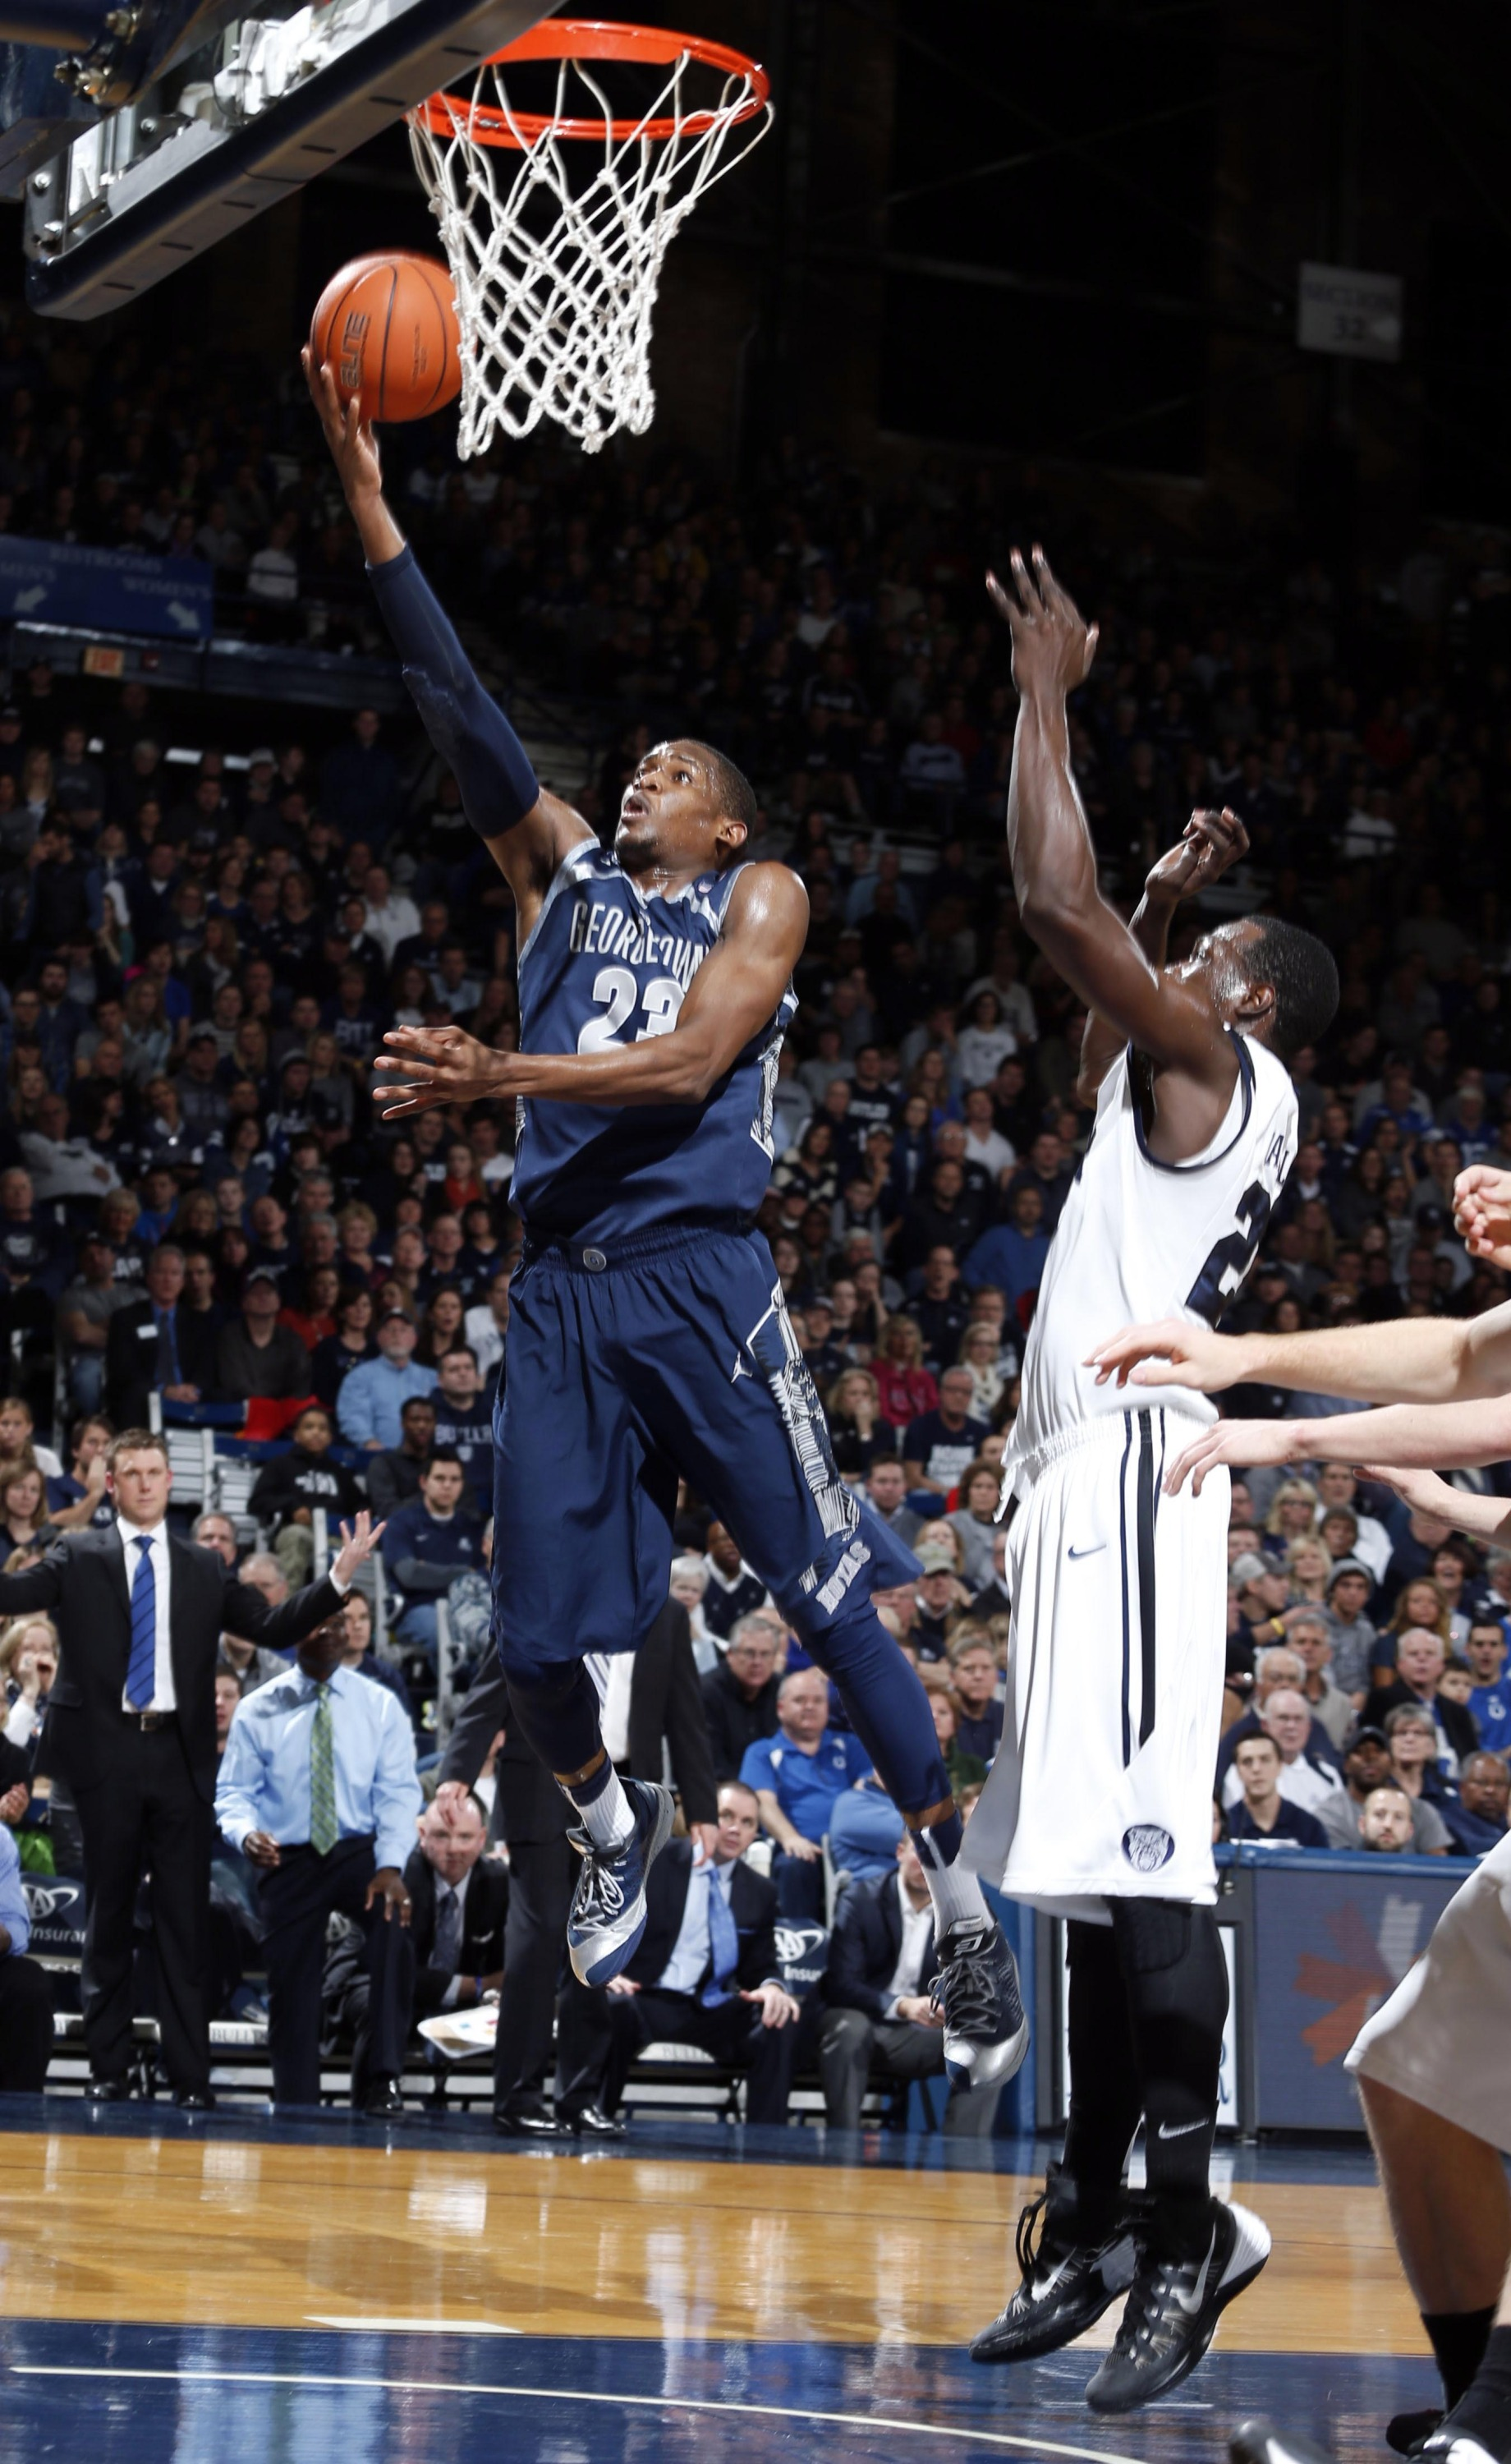 The Georgetown University men's basketball team closes out a three-game road trip on Wednesday, Jan. 15, visiting new BIG EAST Conference member Xavier for the first time.  Tip-off at the Cintas Center in Cincinnati is slated for 7 p.m.